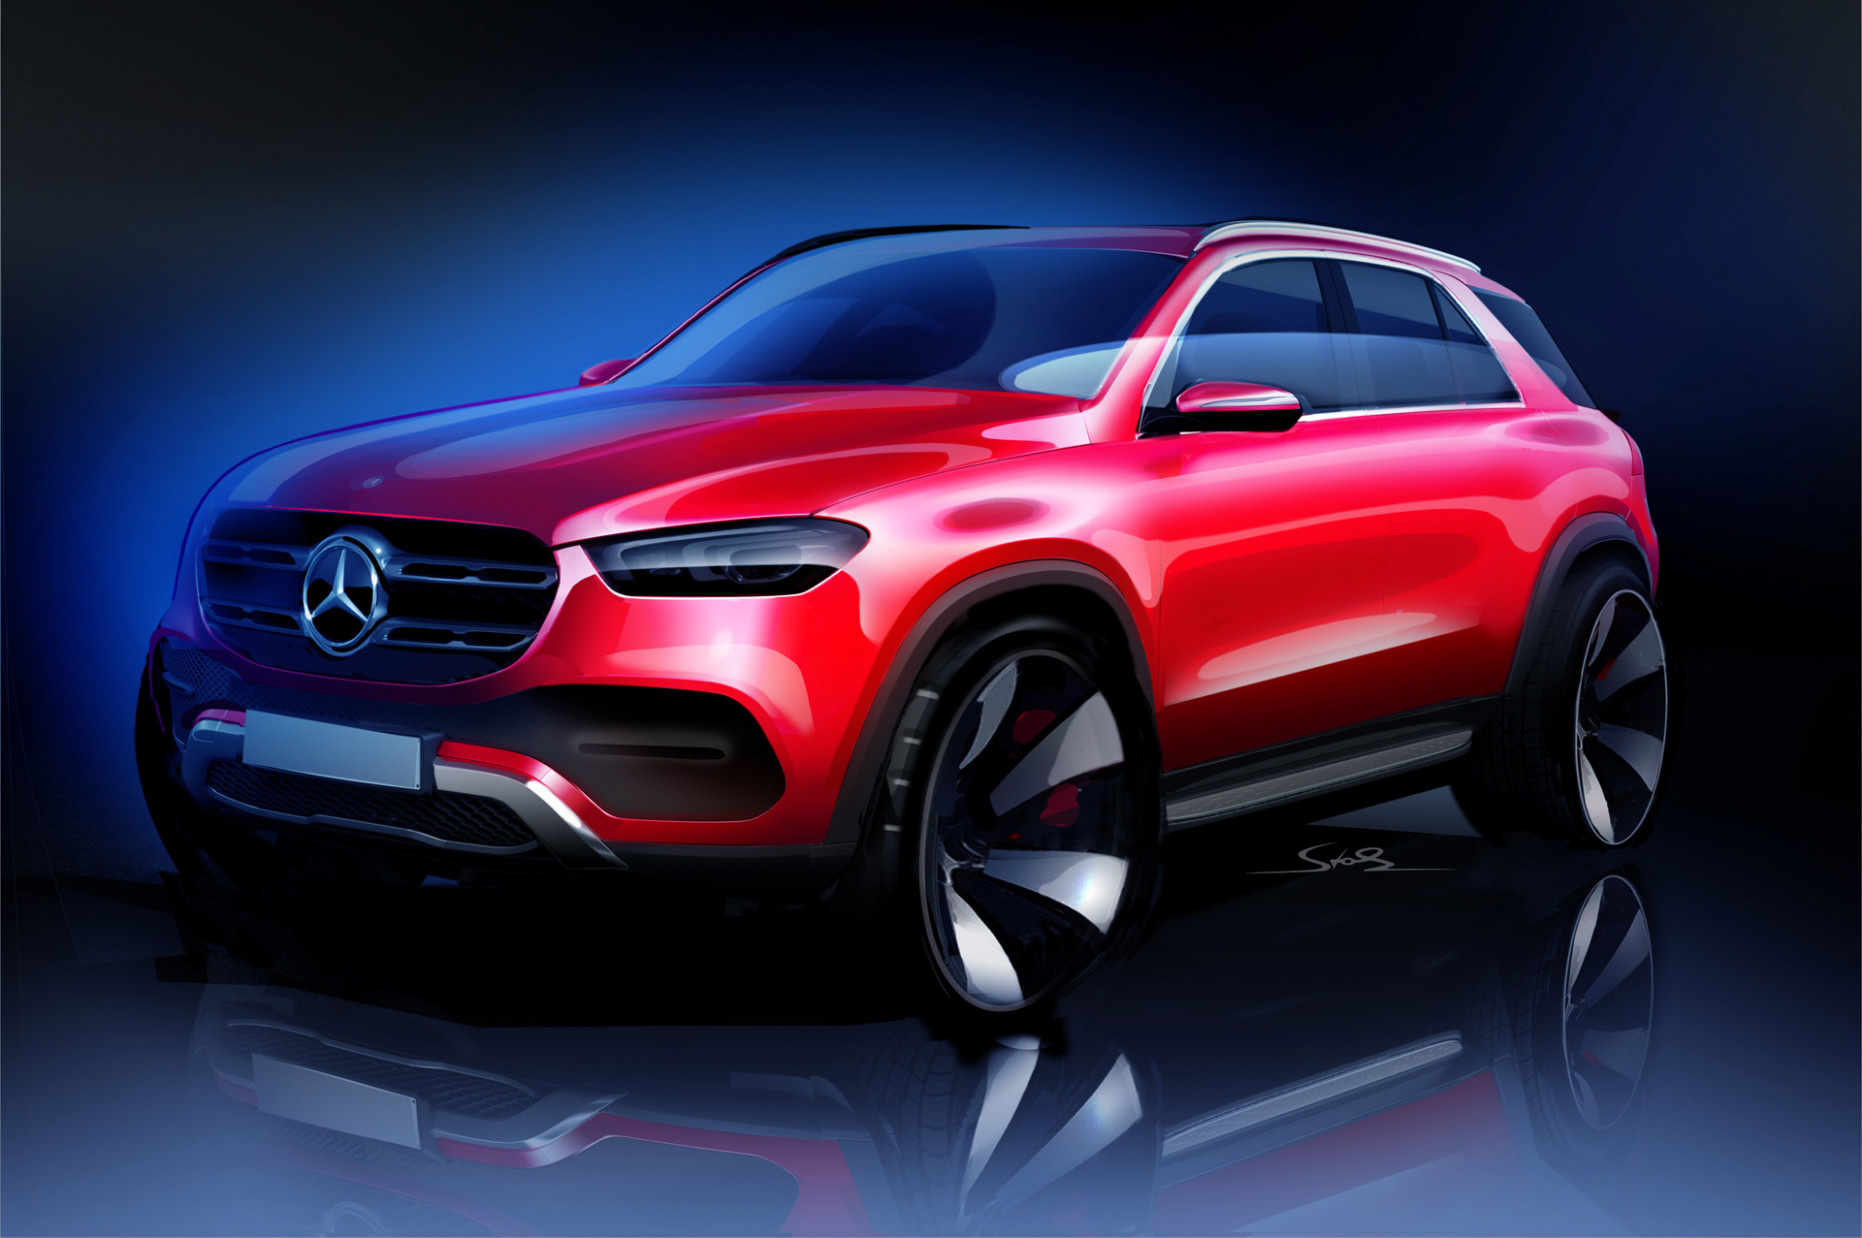 Mercedes-Benz teases 12 GLE luxury SUV - mercedes electric suv 2020